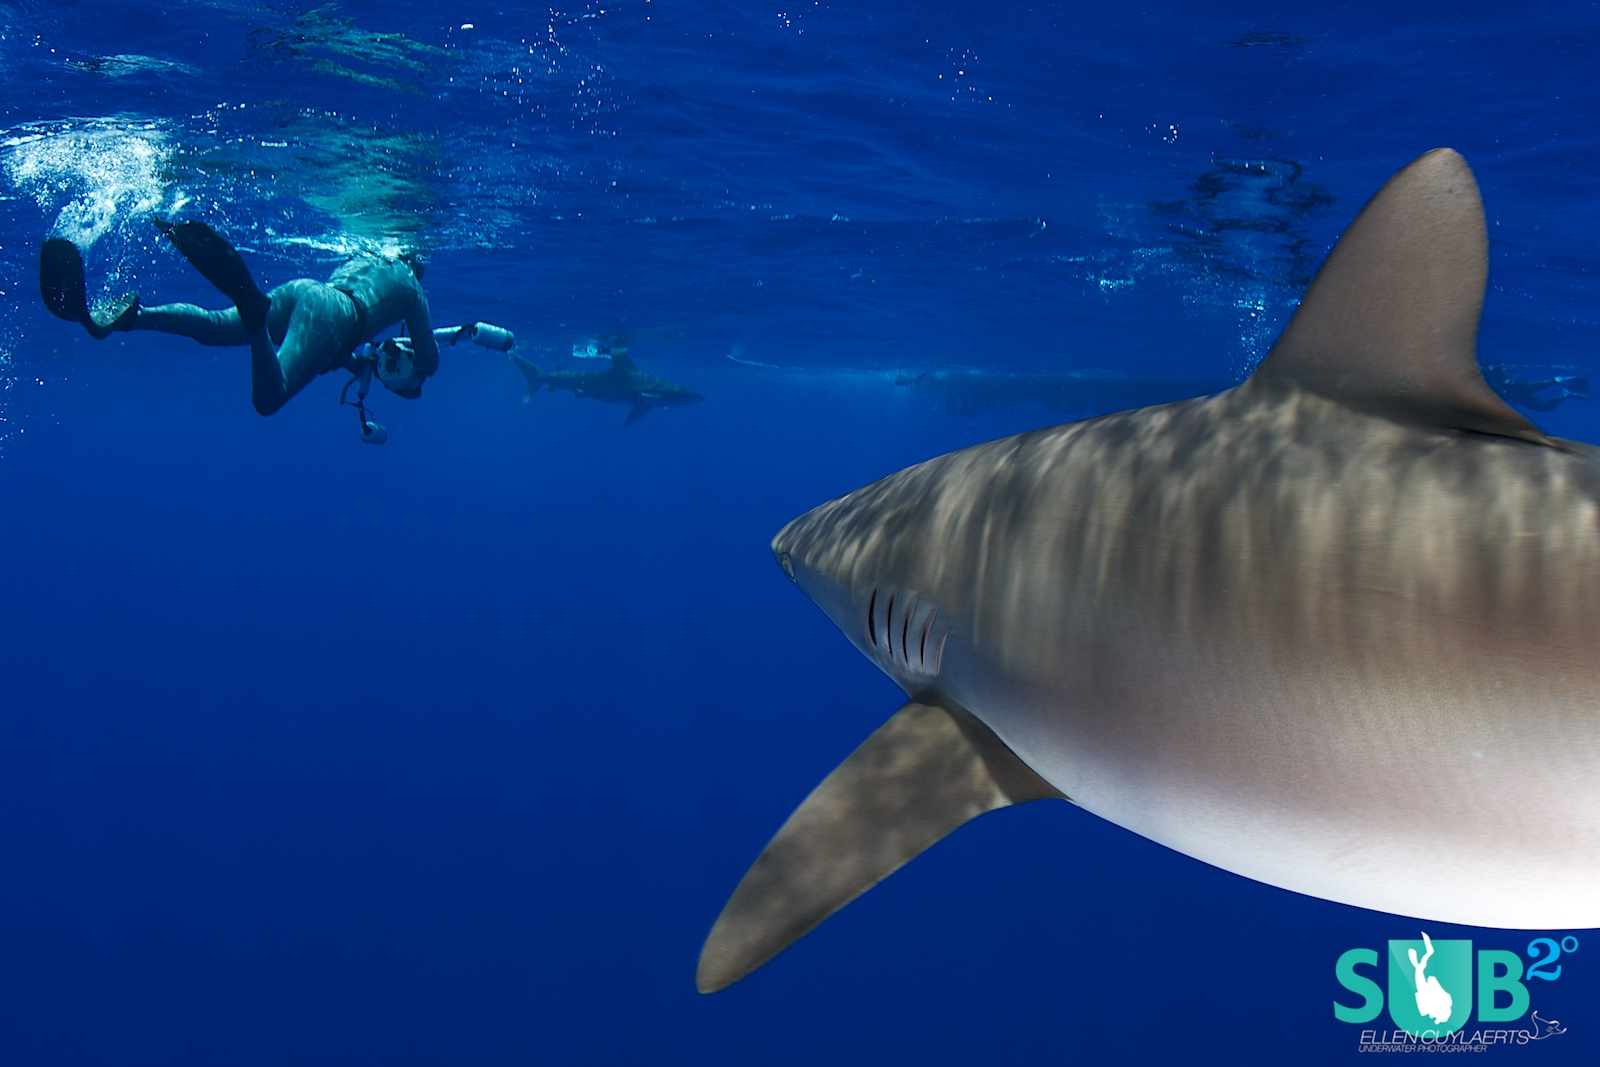 While concentrated on a shark in front of you, don't forget there are probably others around. To be aware of them at all times will keep your heart rate down.